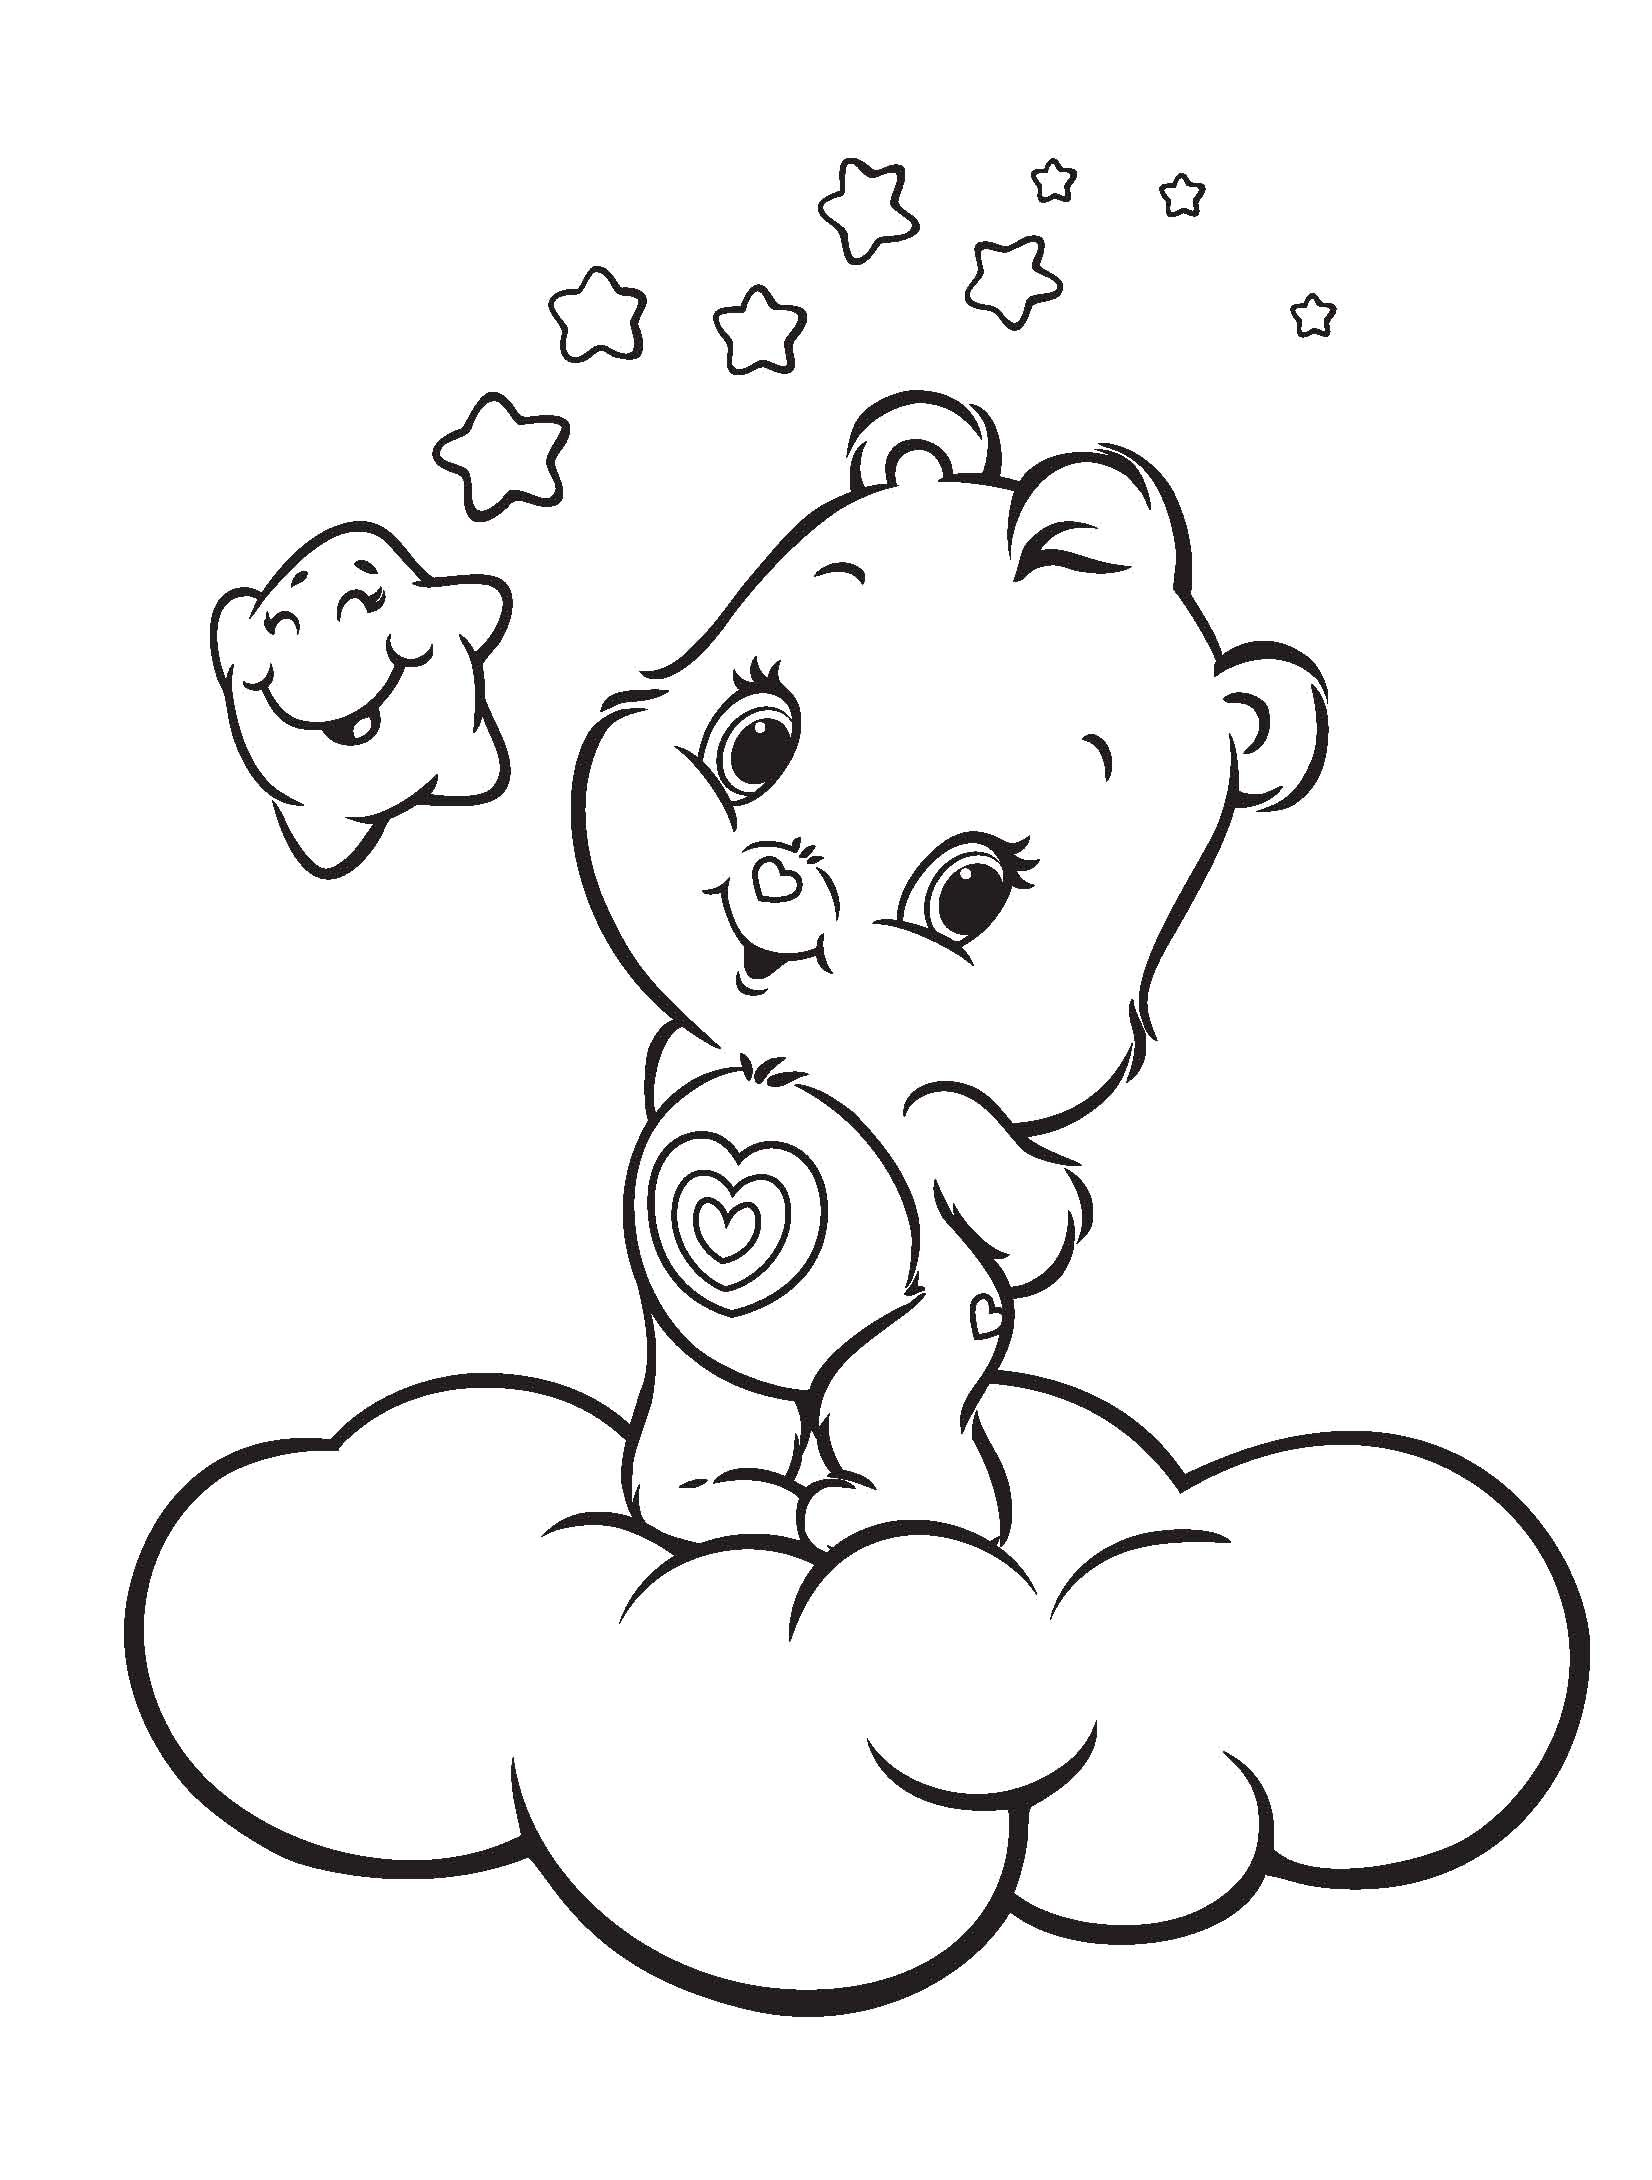 Coloring Pages Coloring Pages Of Teddy Bears To Print coloring pages of teddy bears to print eassume com valentine bear holding rose page teddy